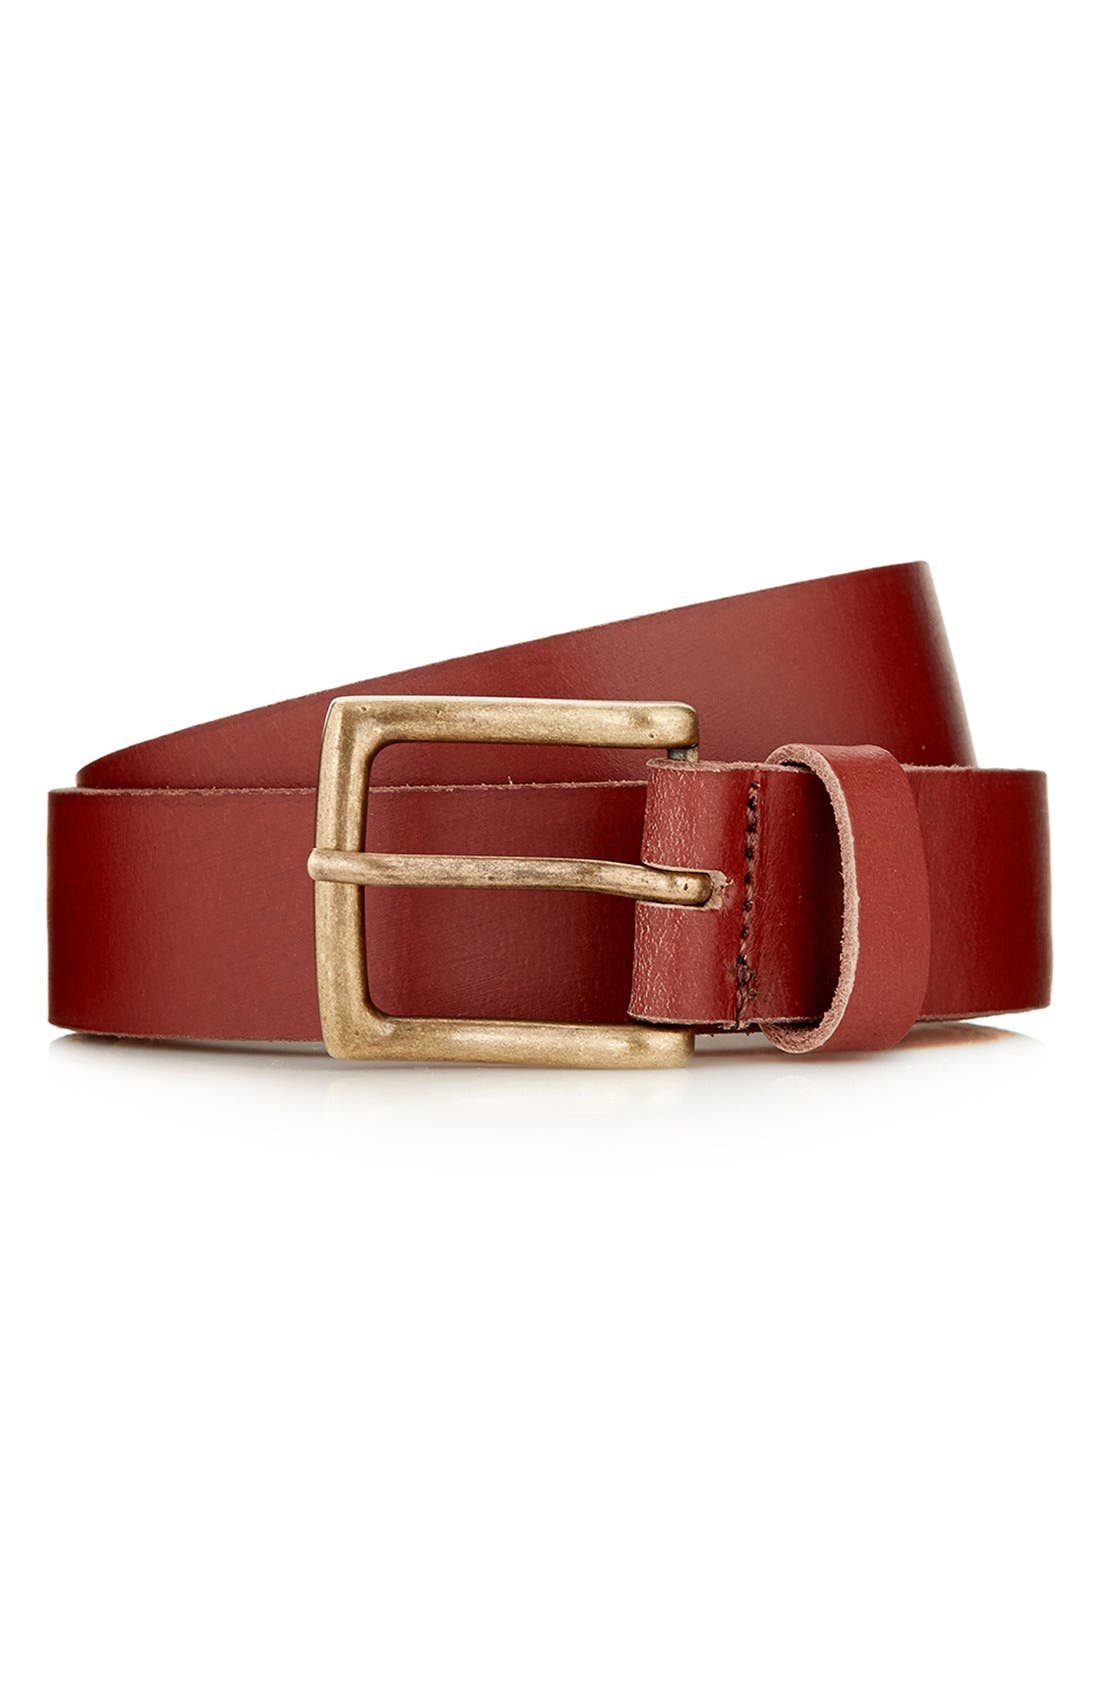 Main Image - Topman Brown Leather Belt